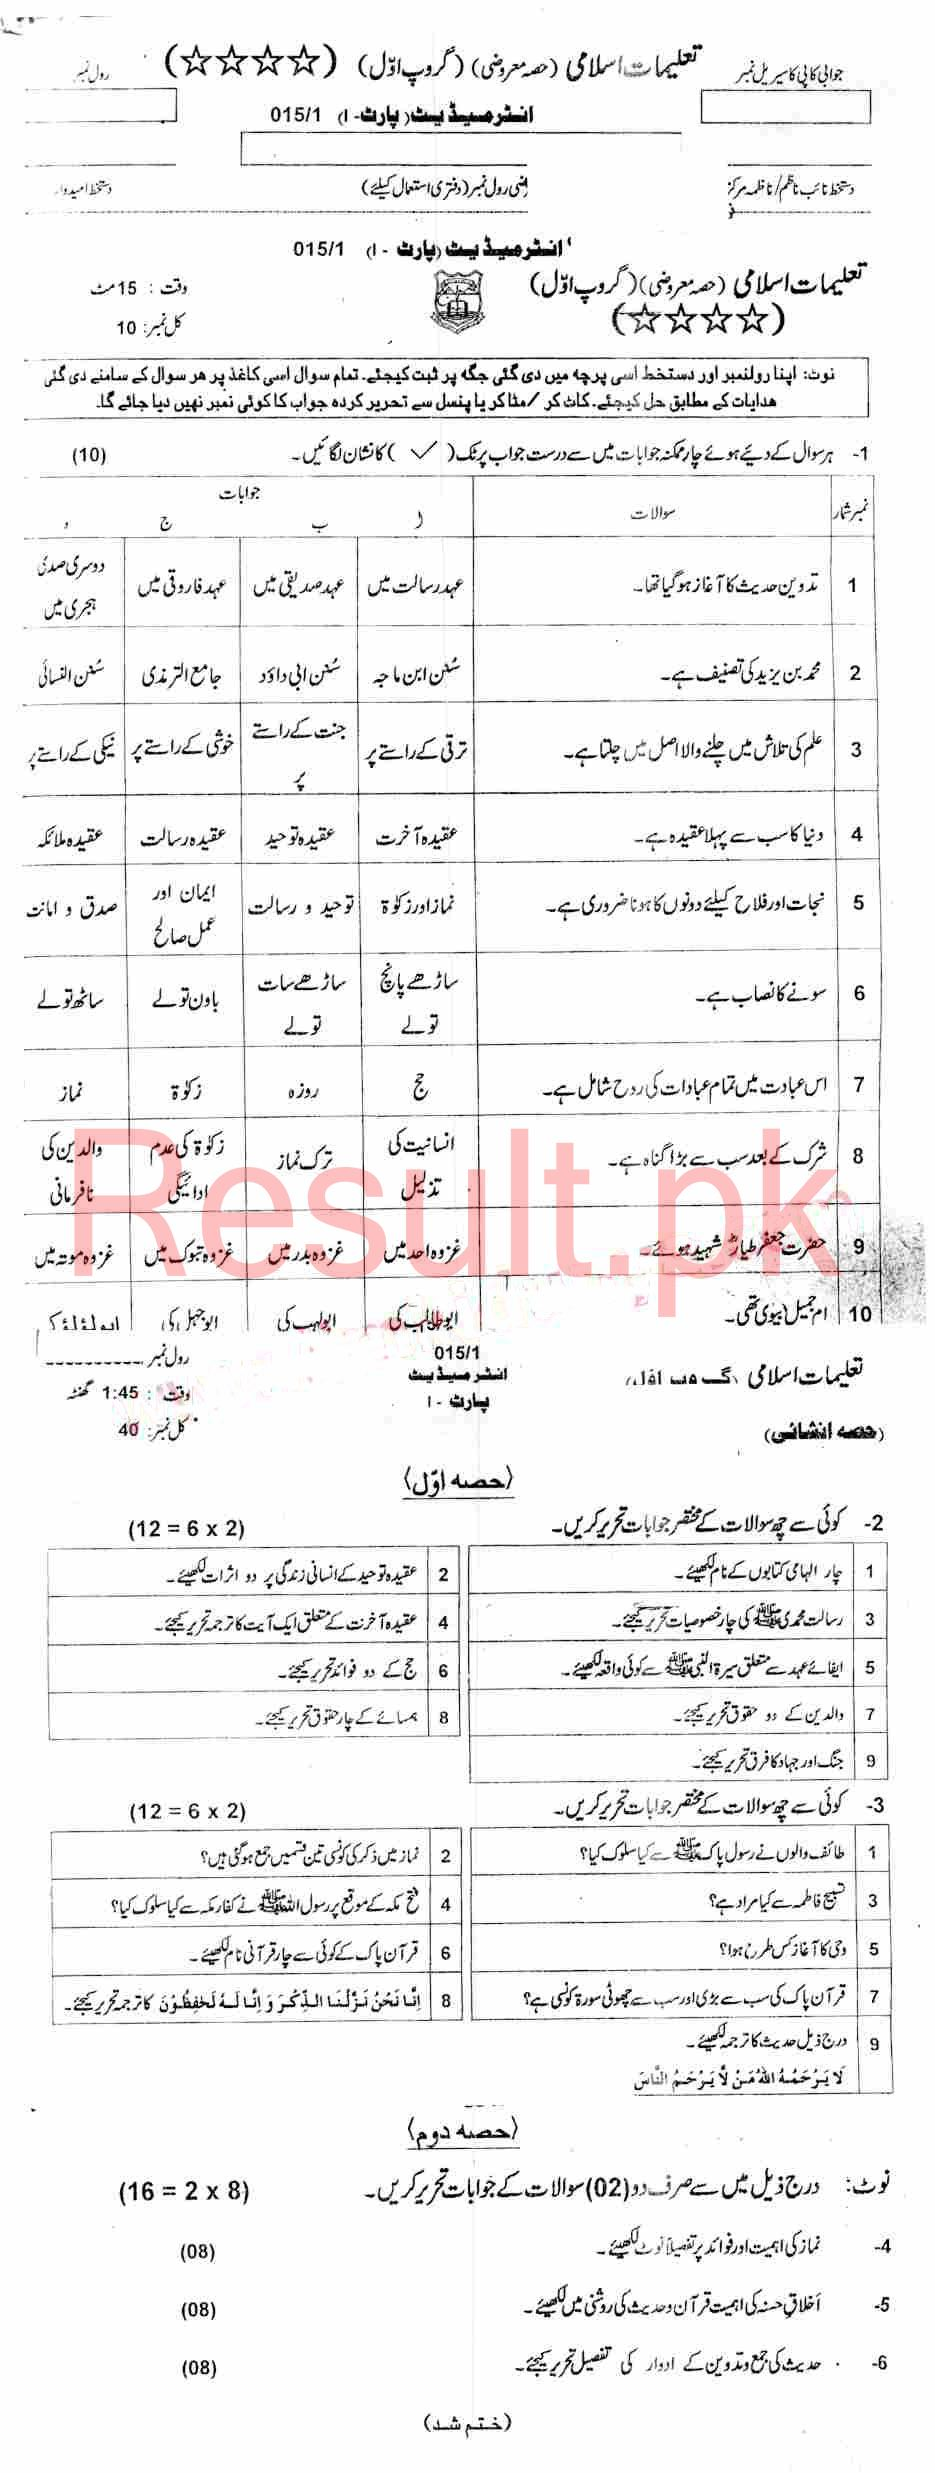 BISE AJK Board Mirpur Past Papers 2019 Inter Part 1 2, FA